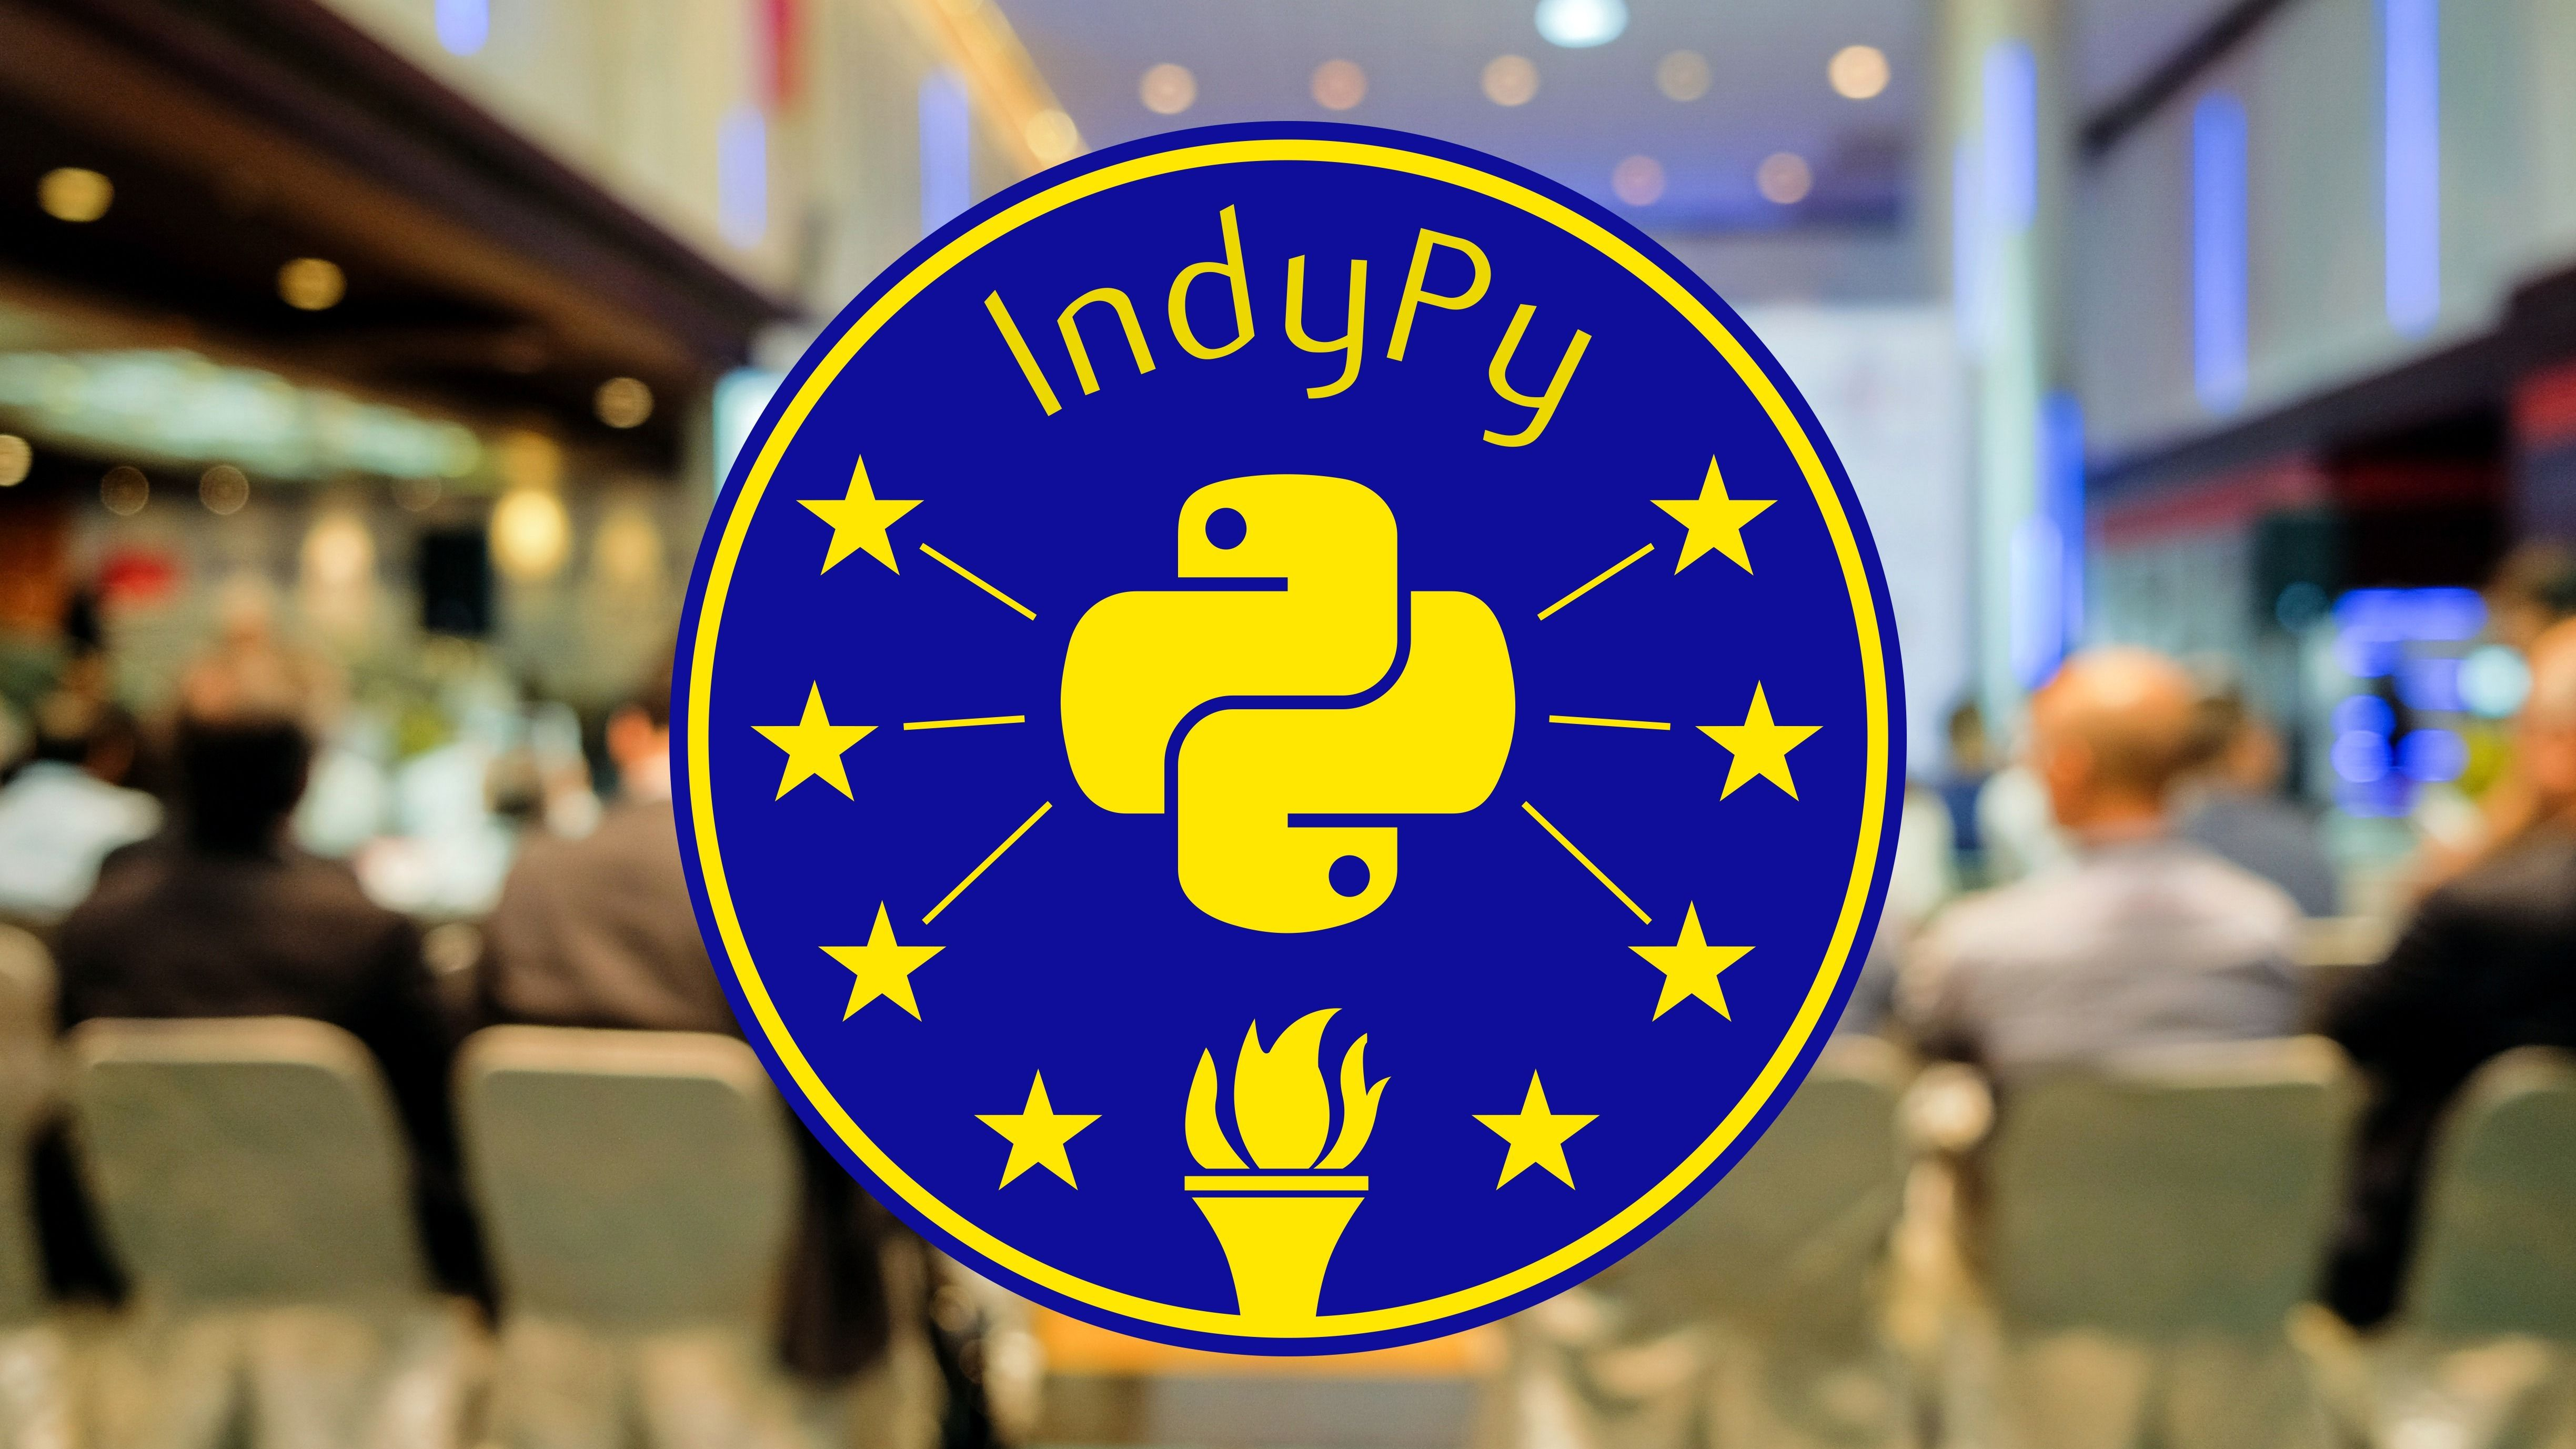 Upcoming events | IndyPy (Indianapolis, IN) | Meetup